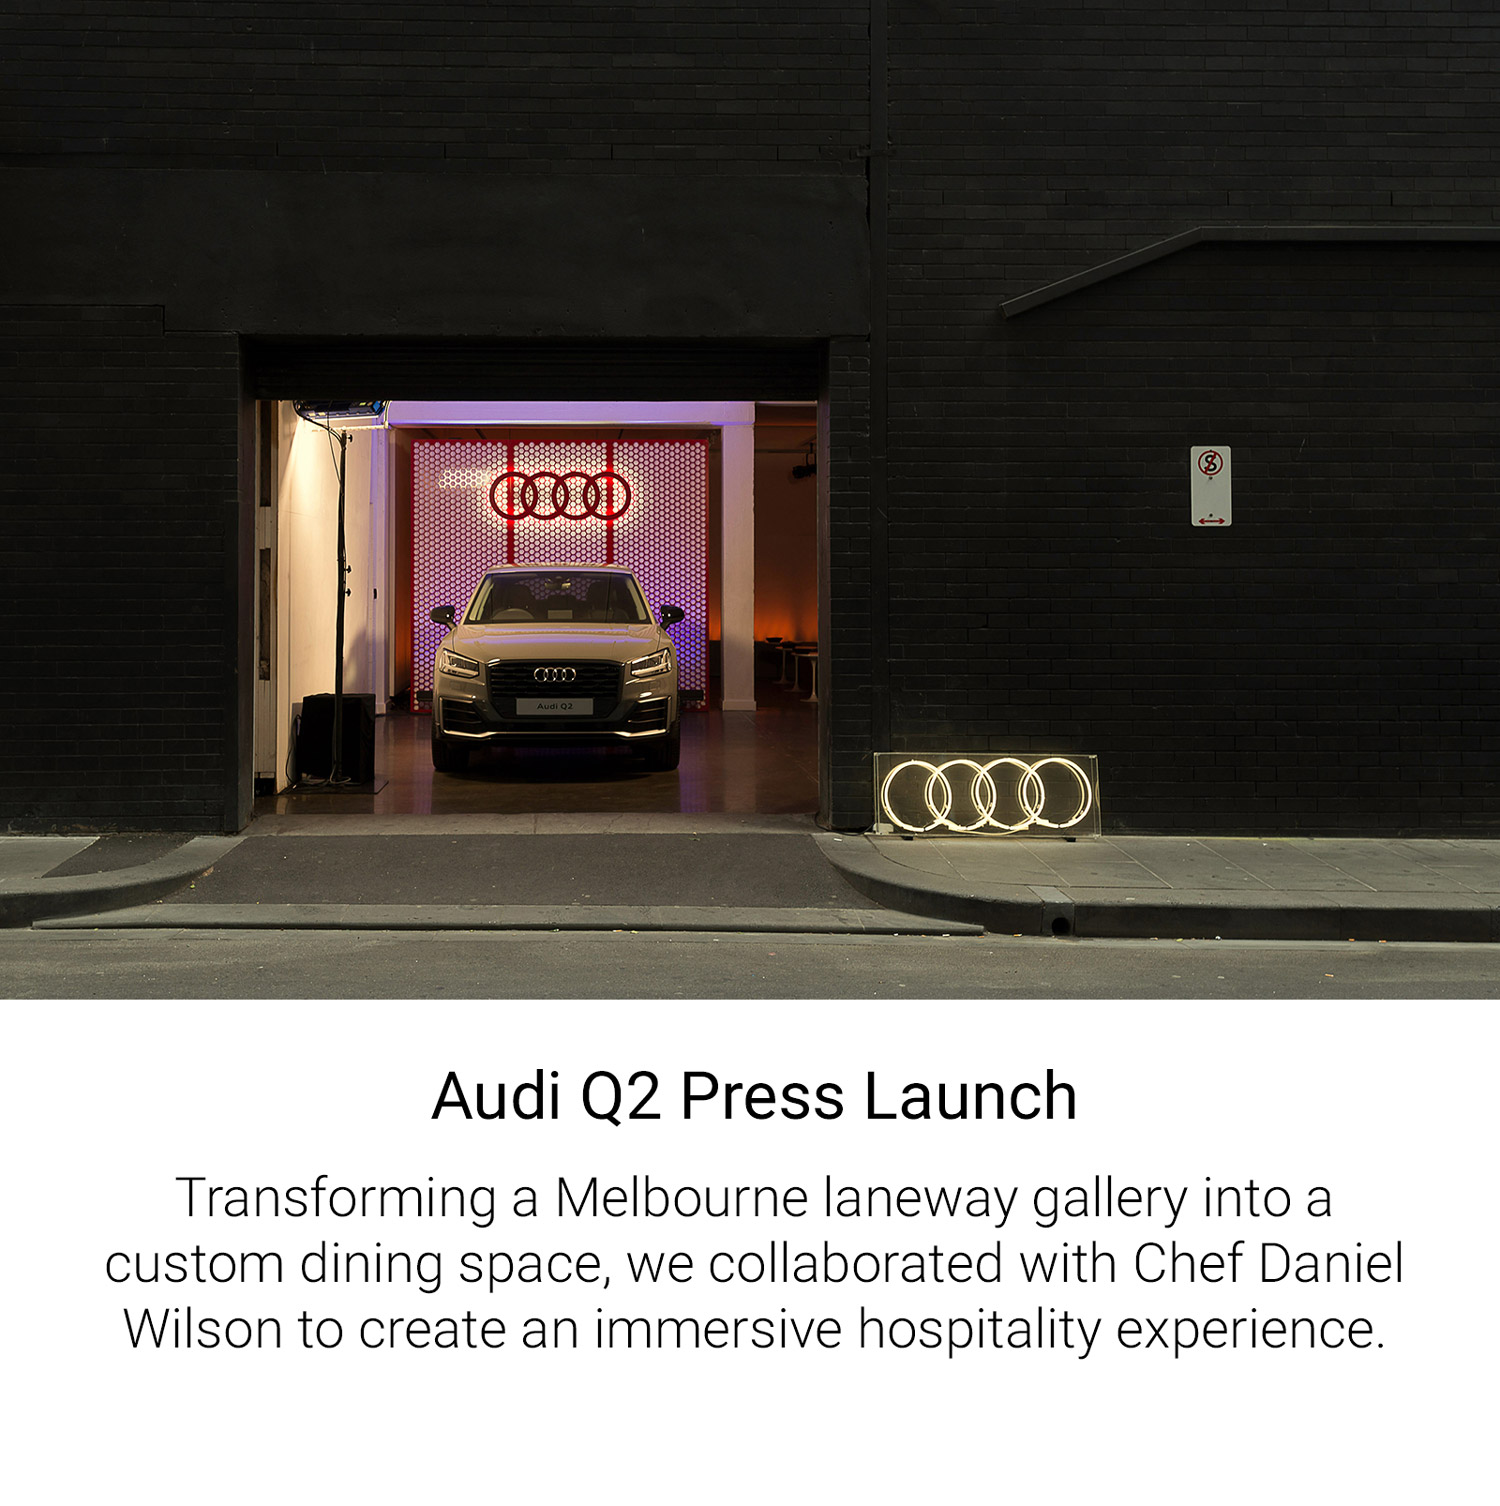 Audi Q2 Press Launch